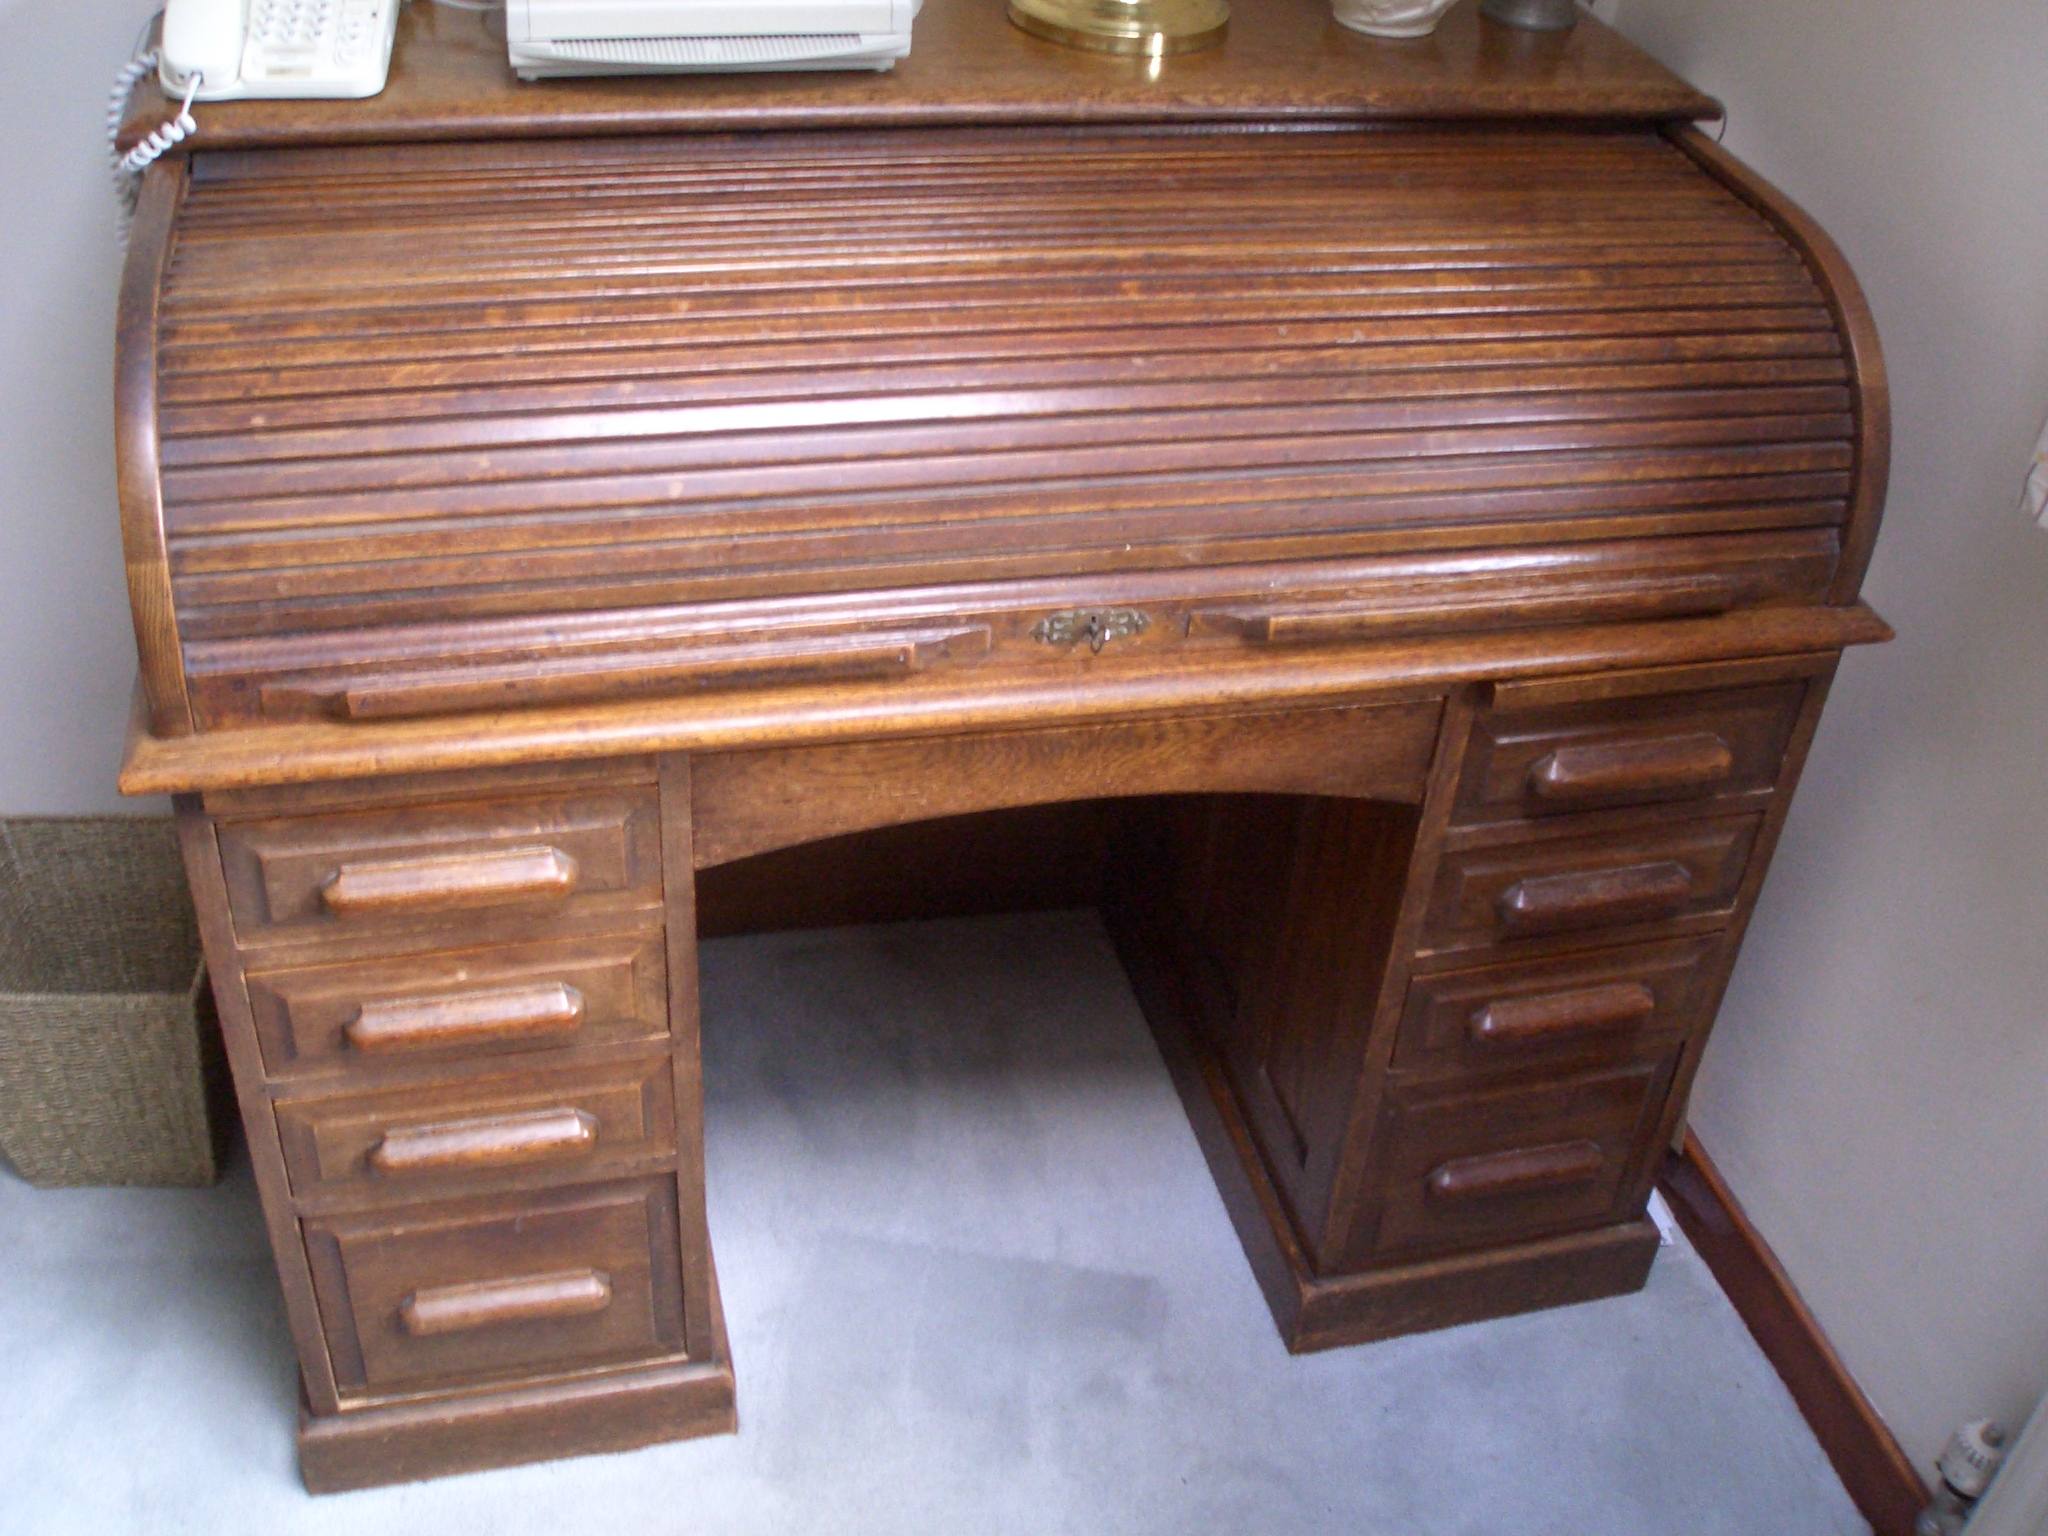 File:Rolltop desk.JPG - Wikimedia Commons